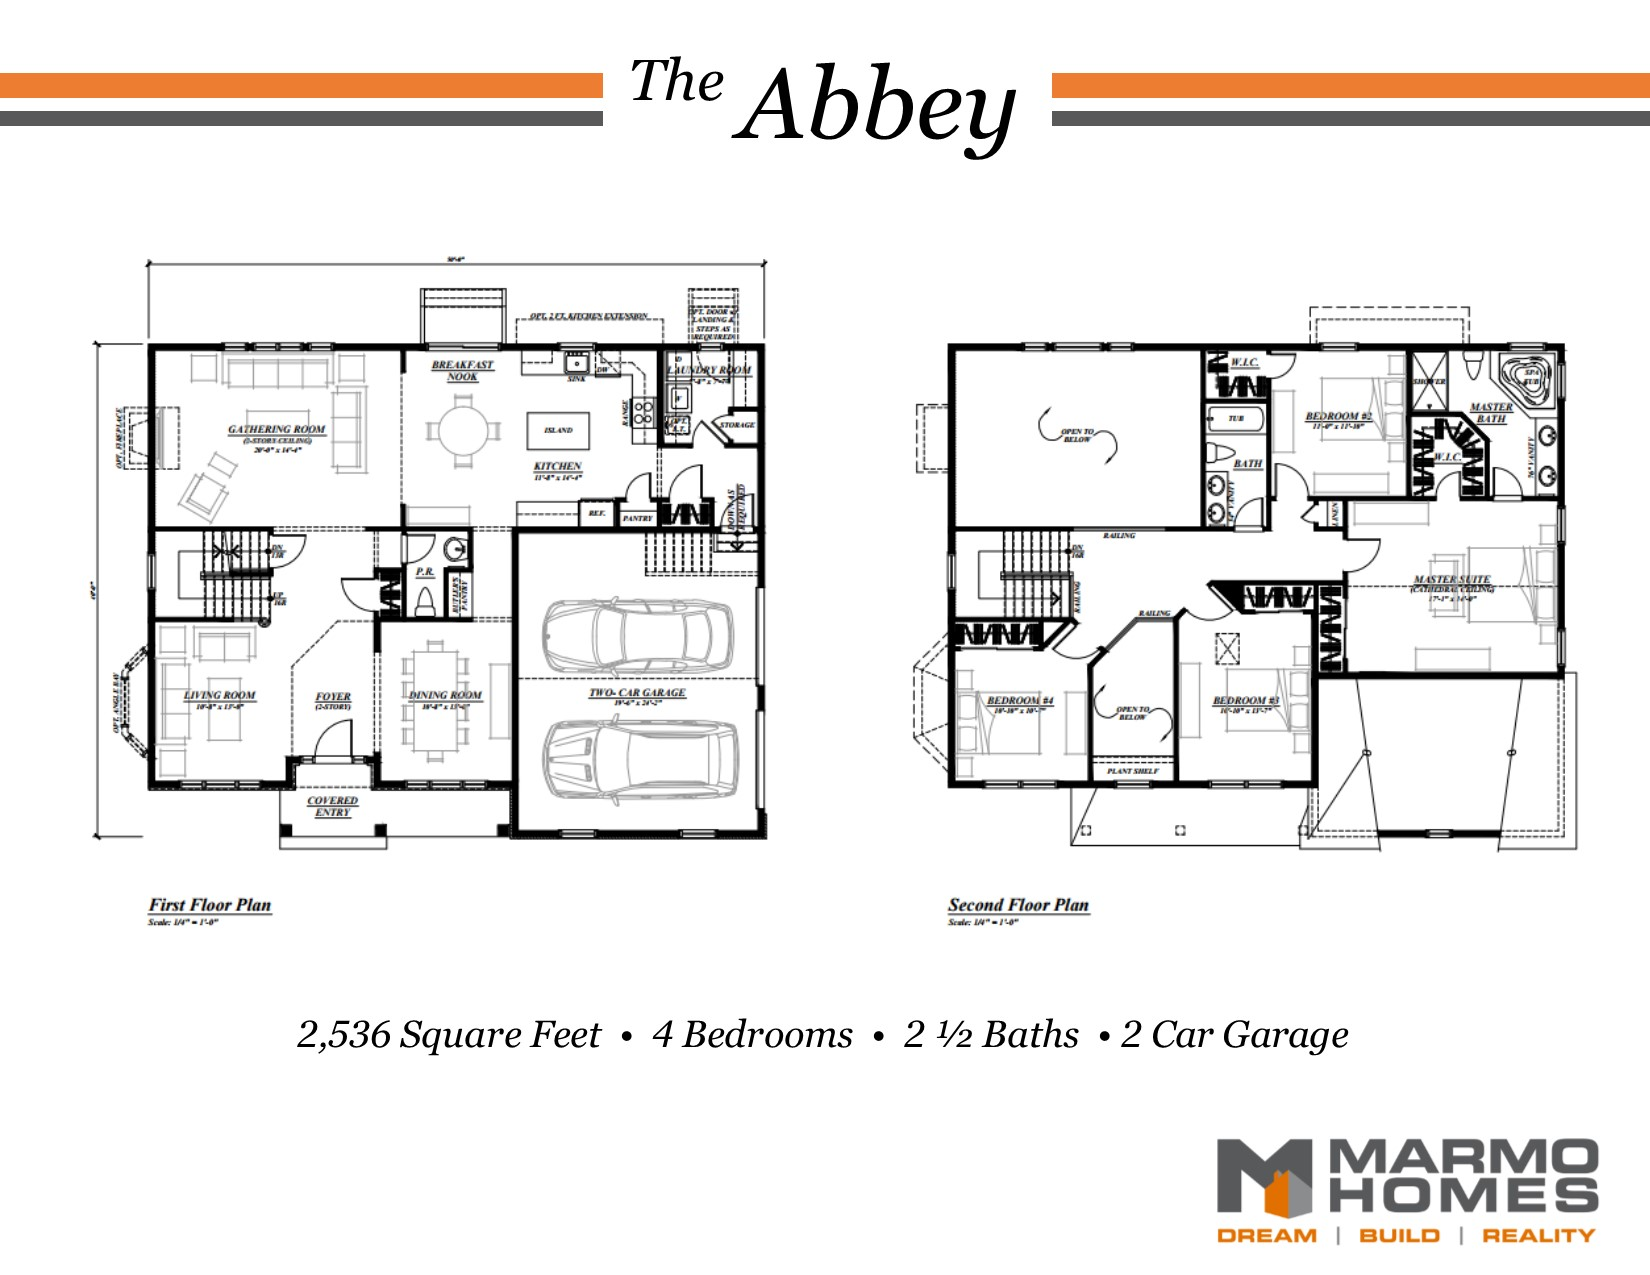 The Abbey Floor Plan - Marmo Homes